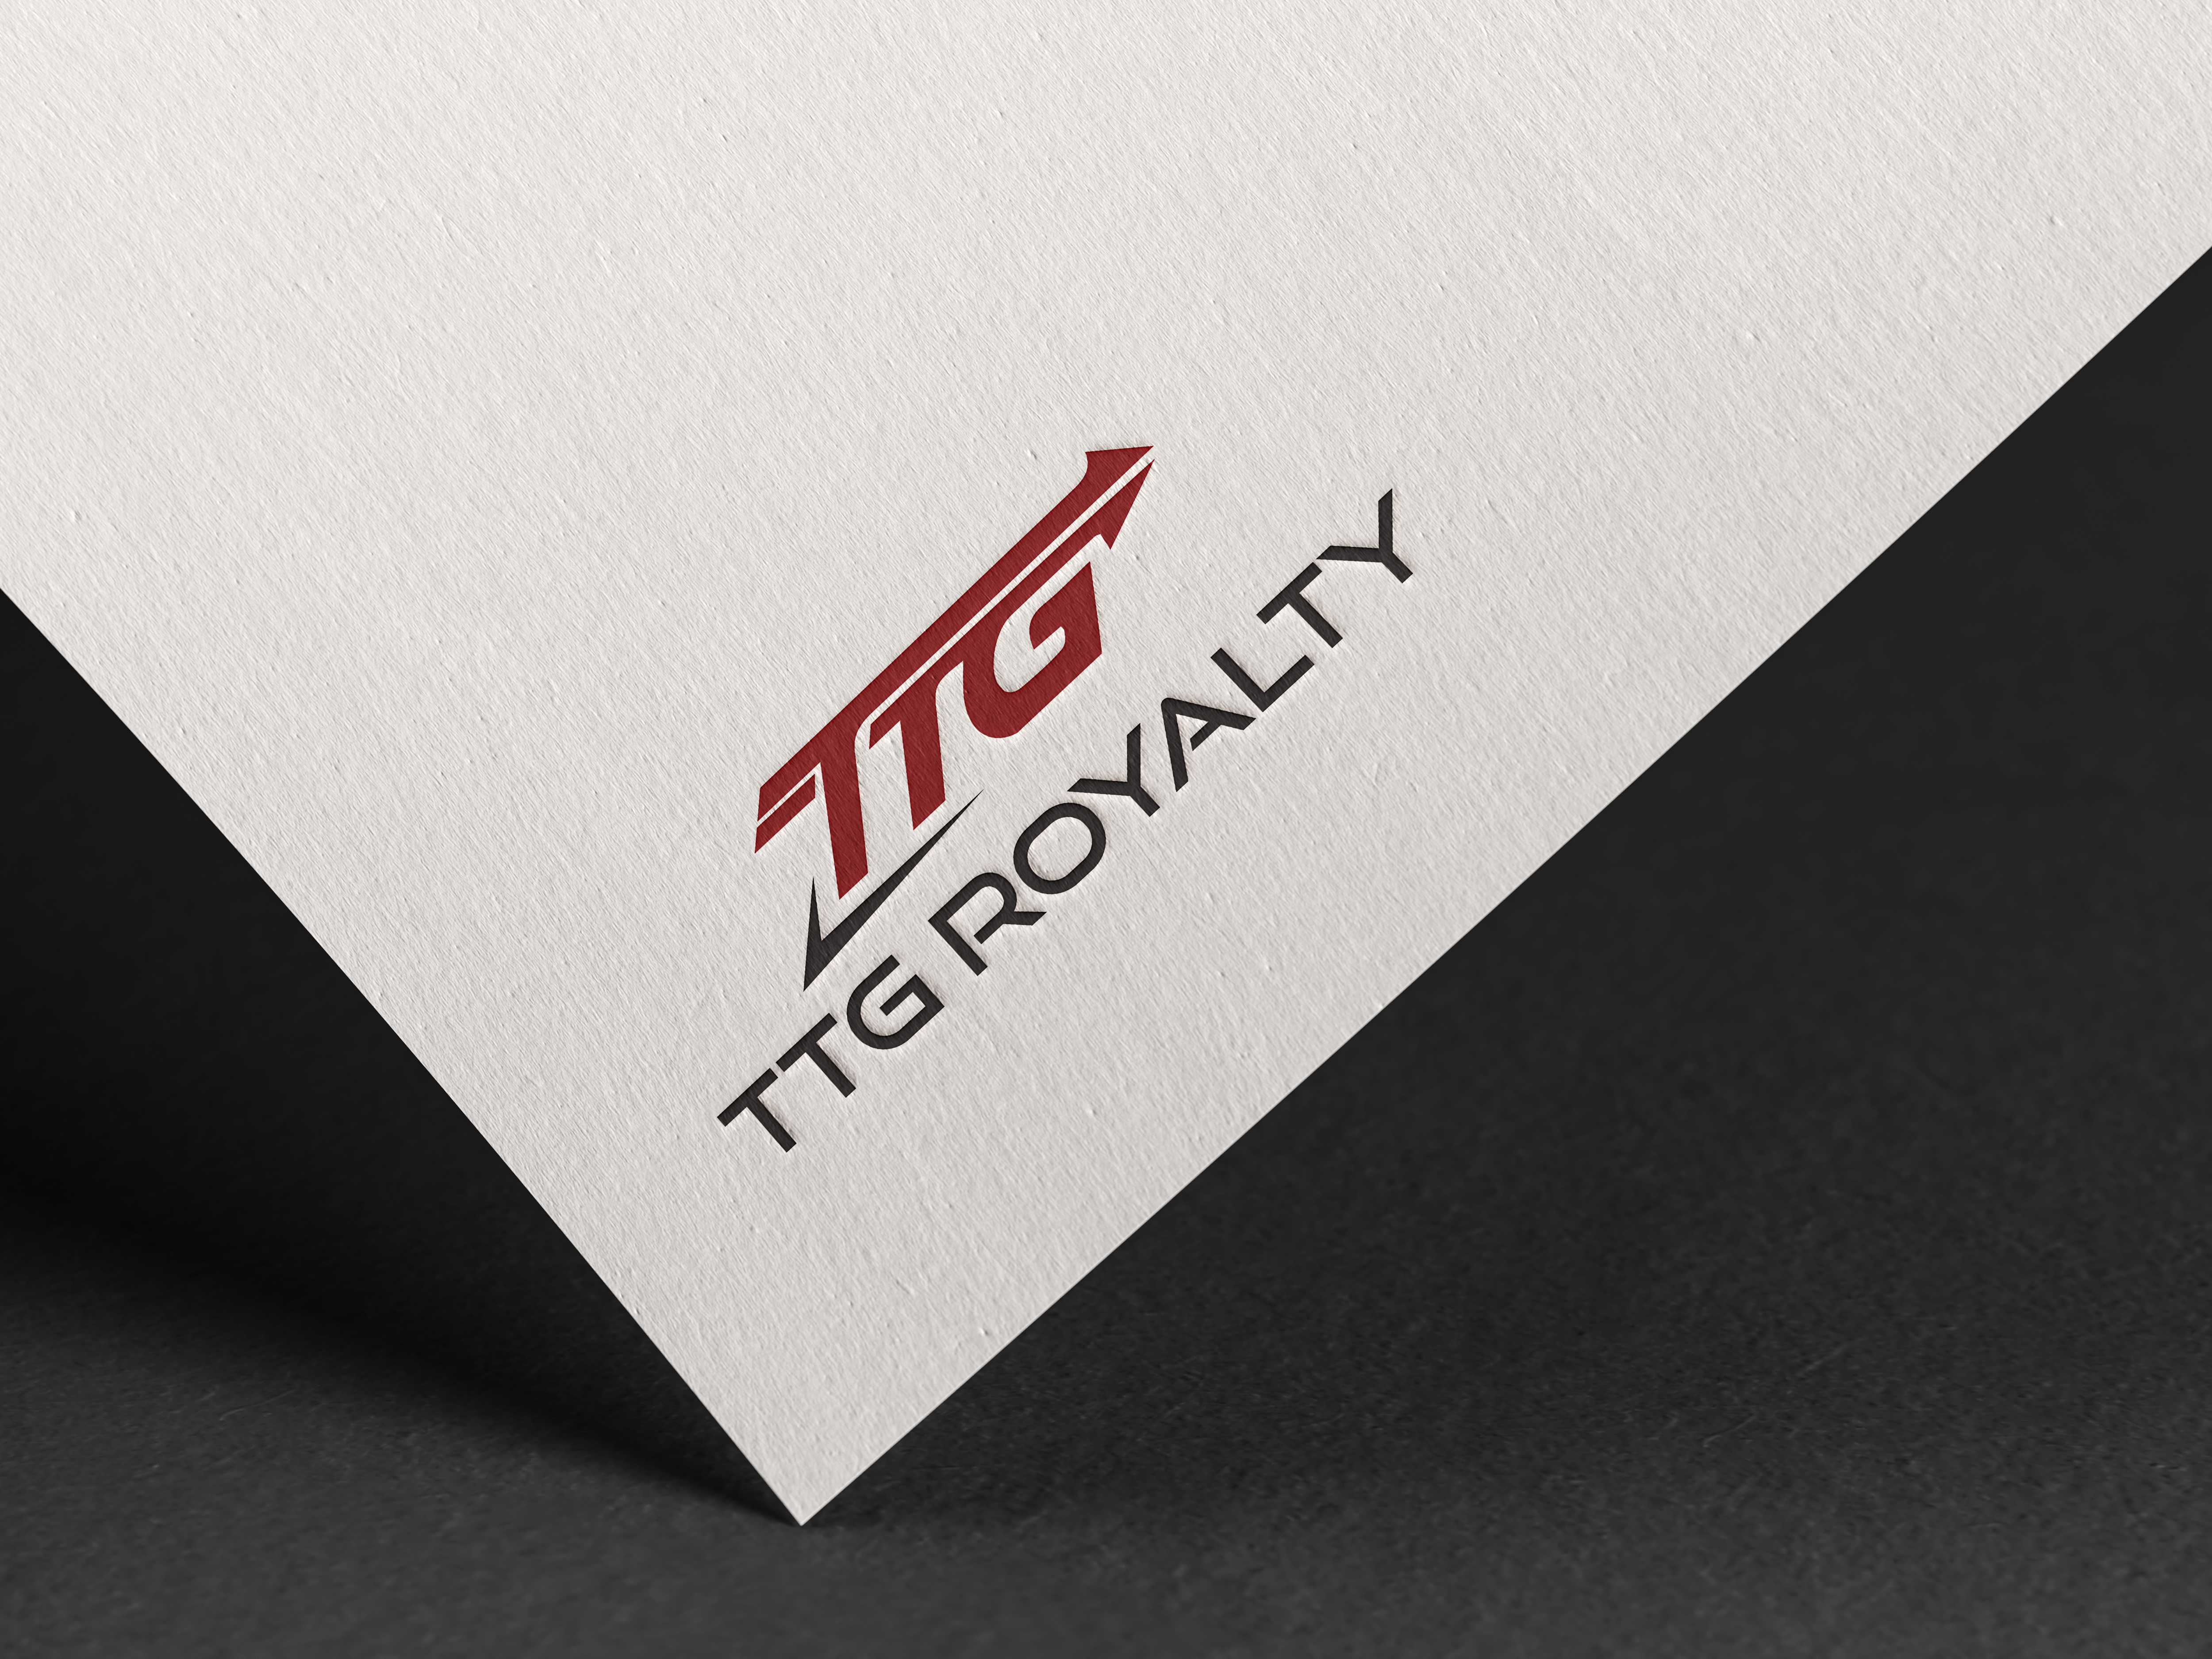 I will design wonderful logo for your Company within 4 hours